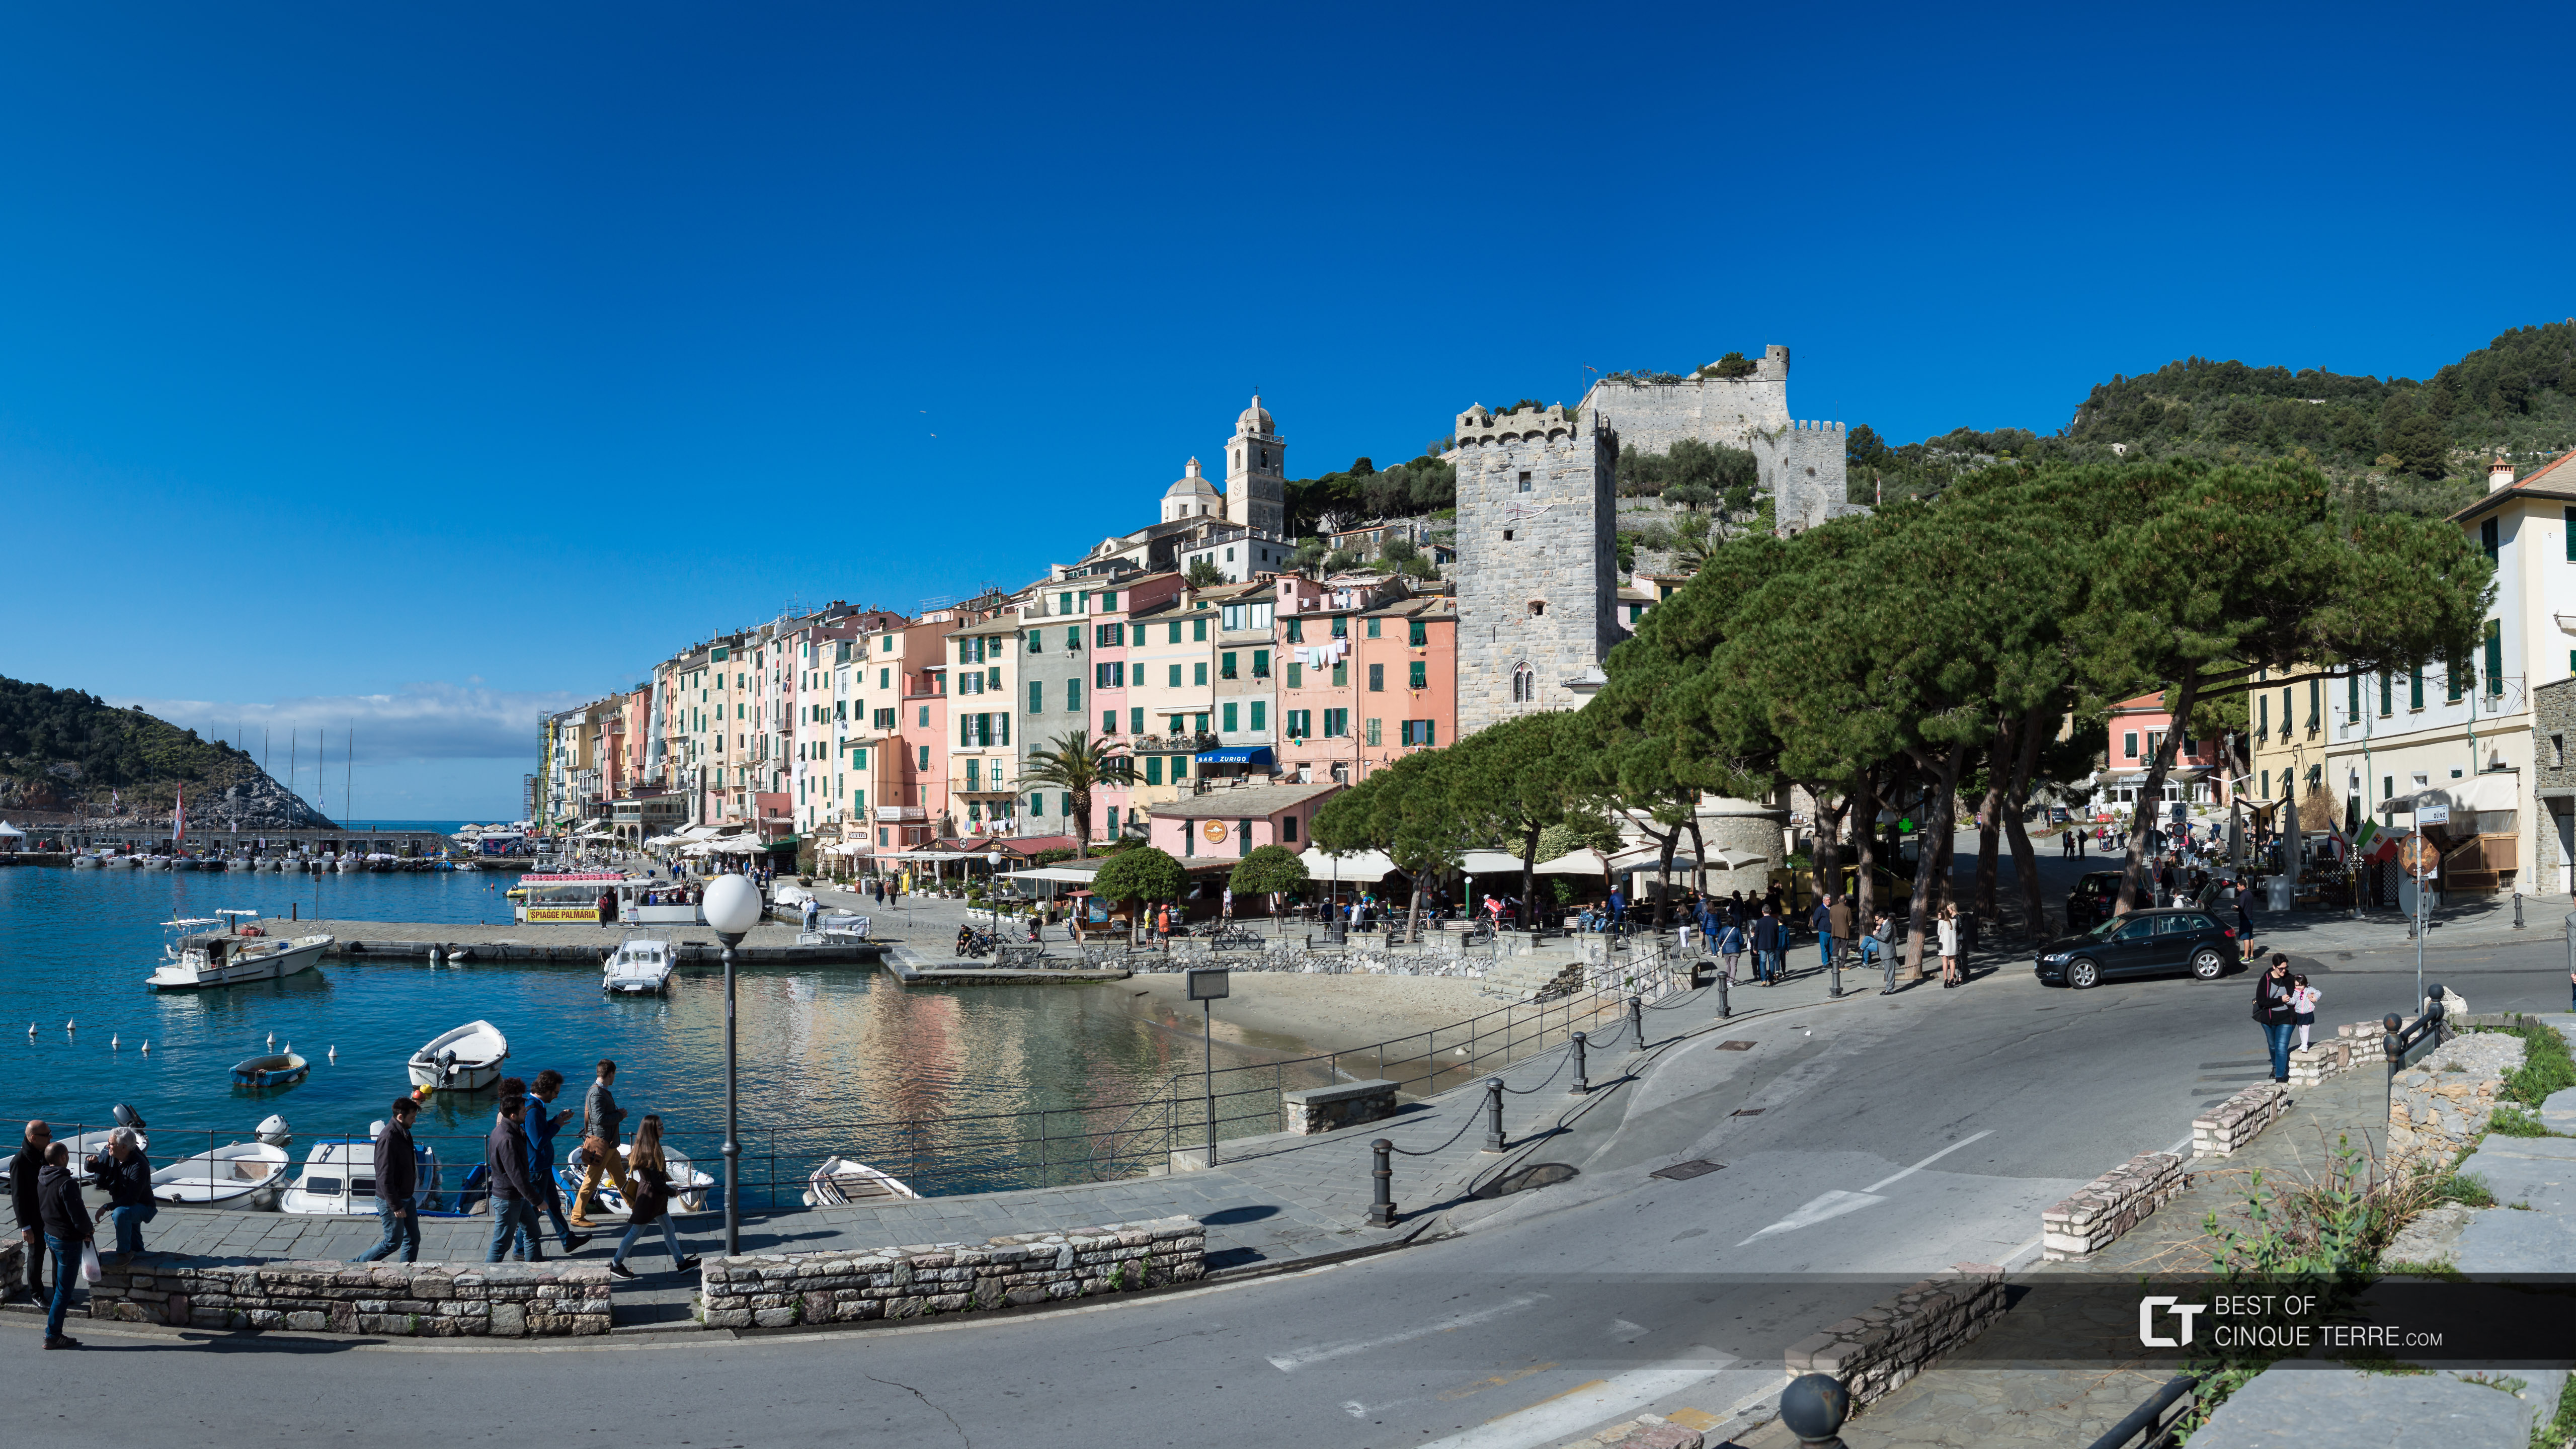 View from the bus stop, Portovenere, Italy